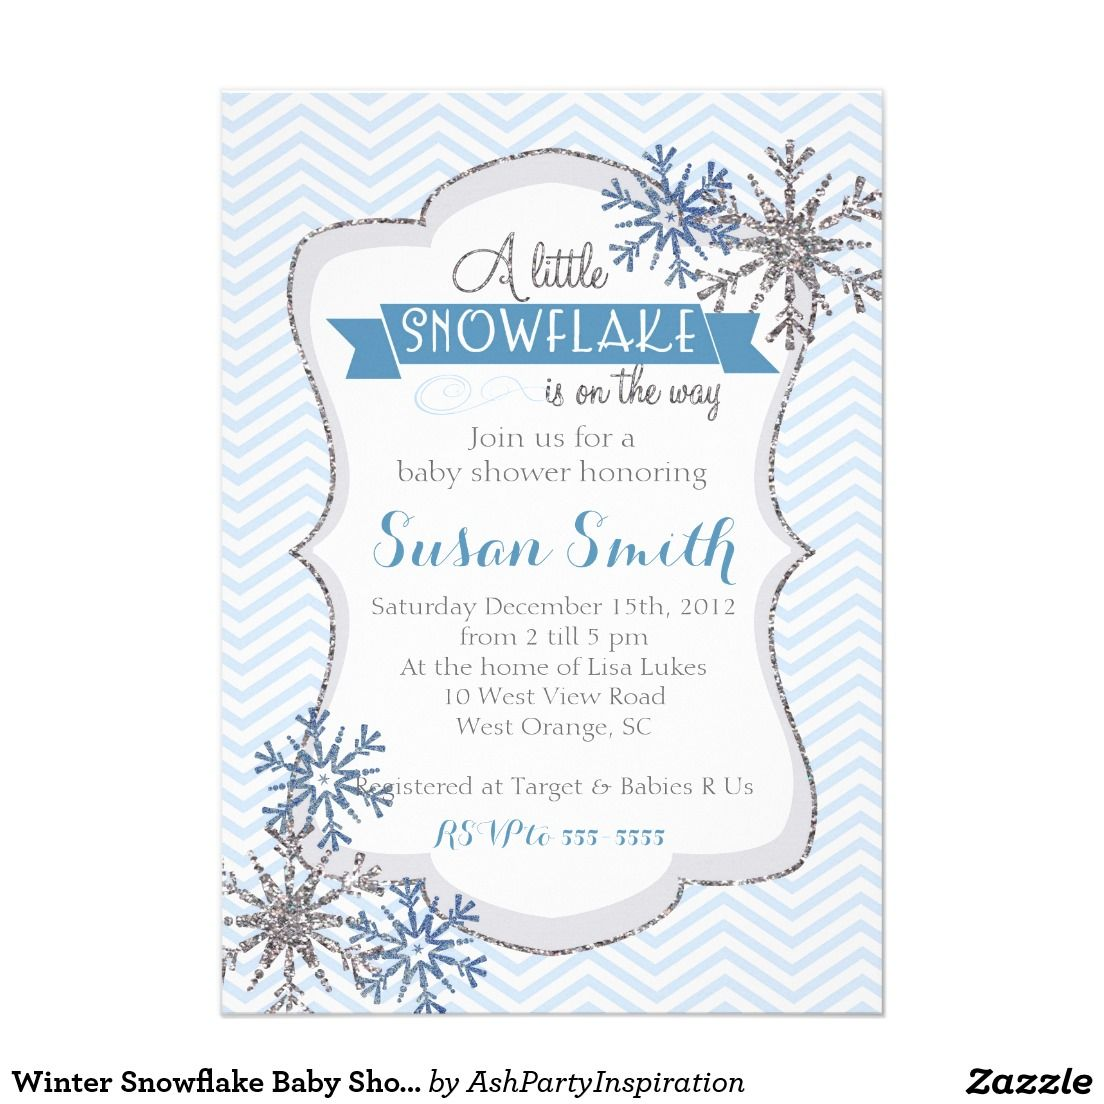 Winter Snowflake Baby Shower invitation | Baby Shower Invitations ...